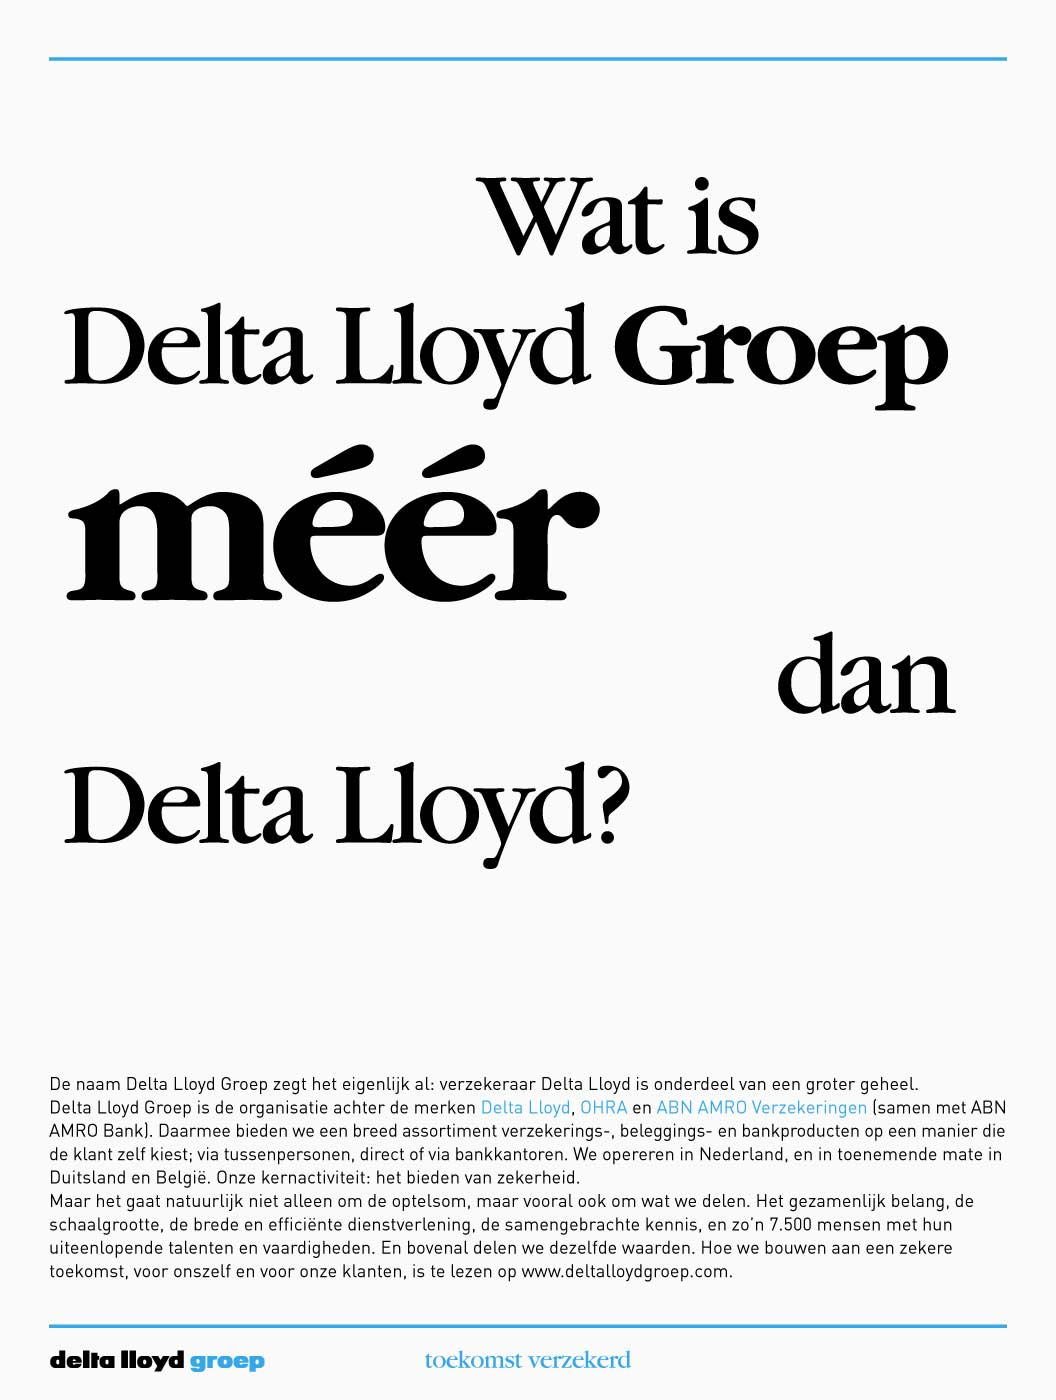 Delta Lloyd Group Year Magzine, design, art direction, photography, art buying, branding, advertisements